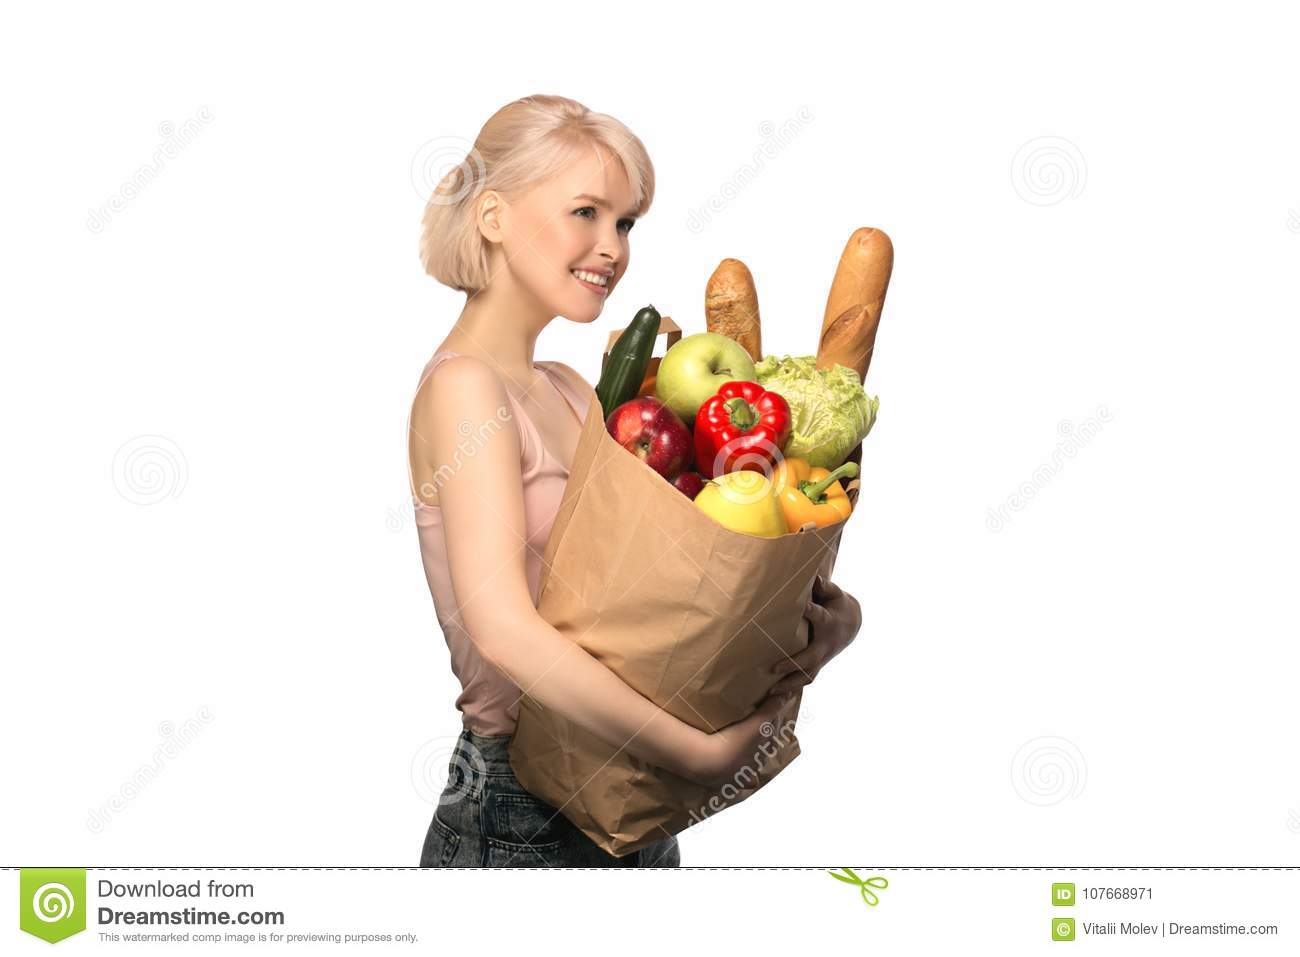 Woman with groceries shopping bag